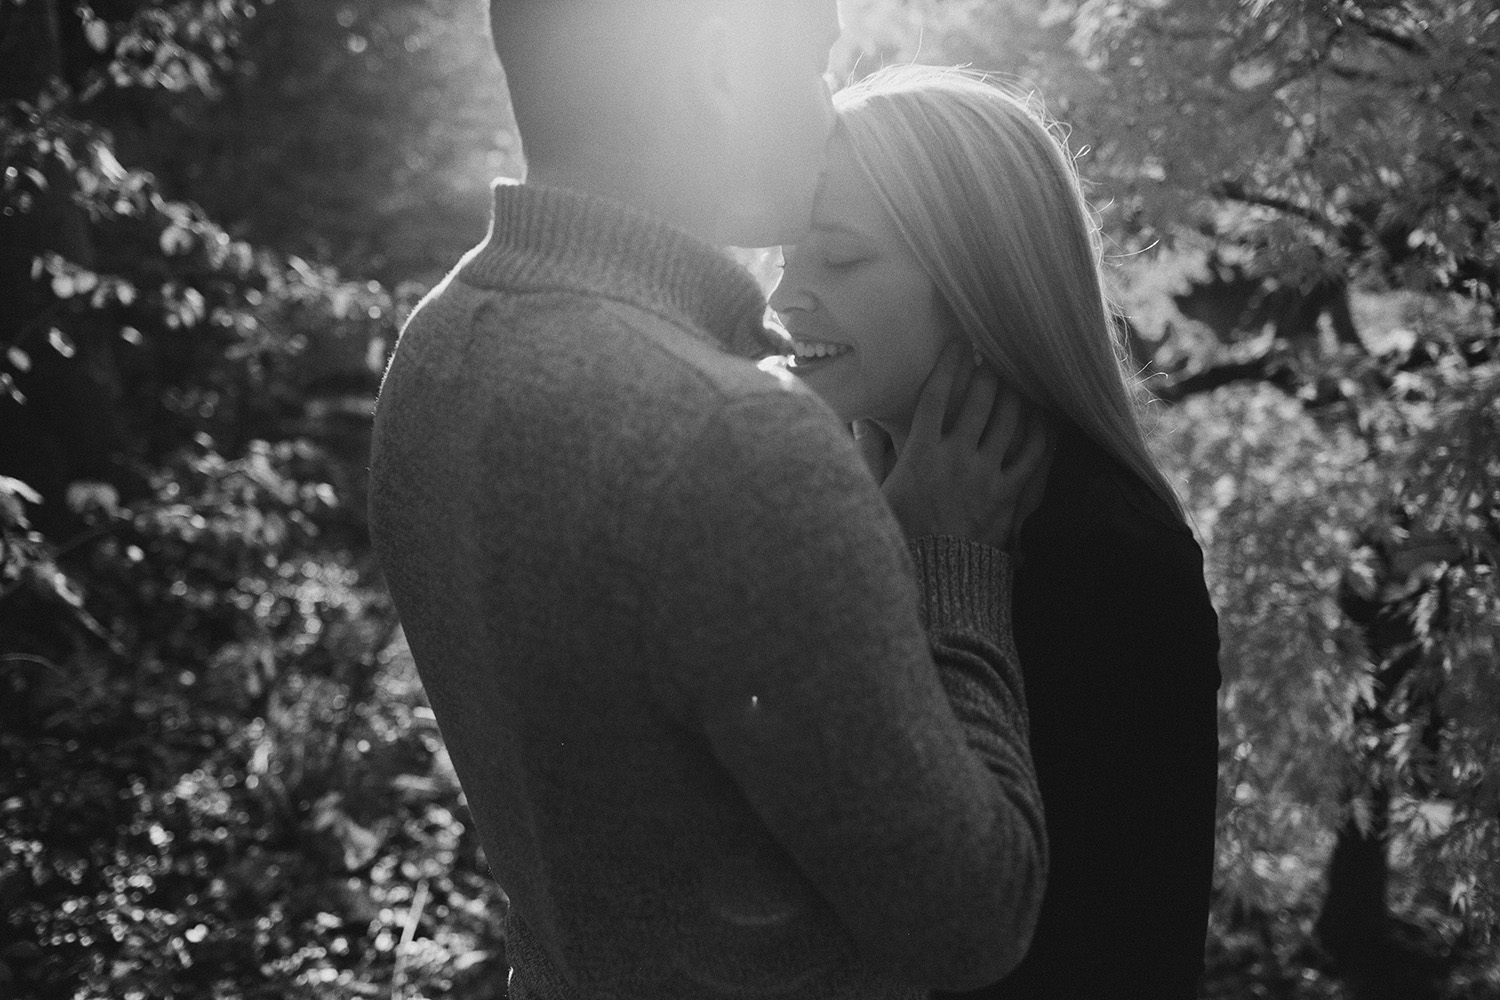 Botanical garden engagement photos_0018.jpg